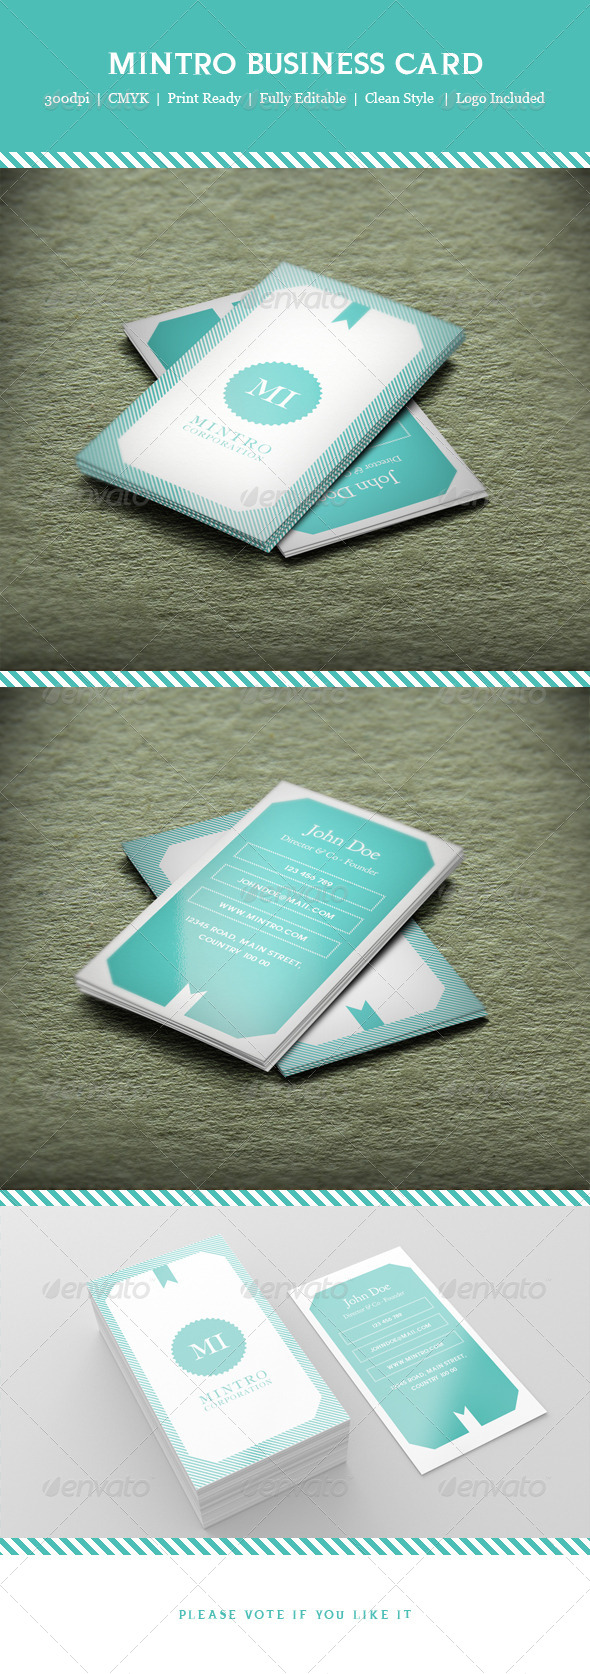 Mintro Business Card - Business Cards Print Templates